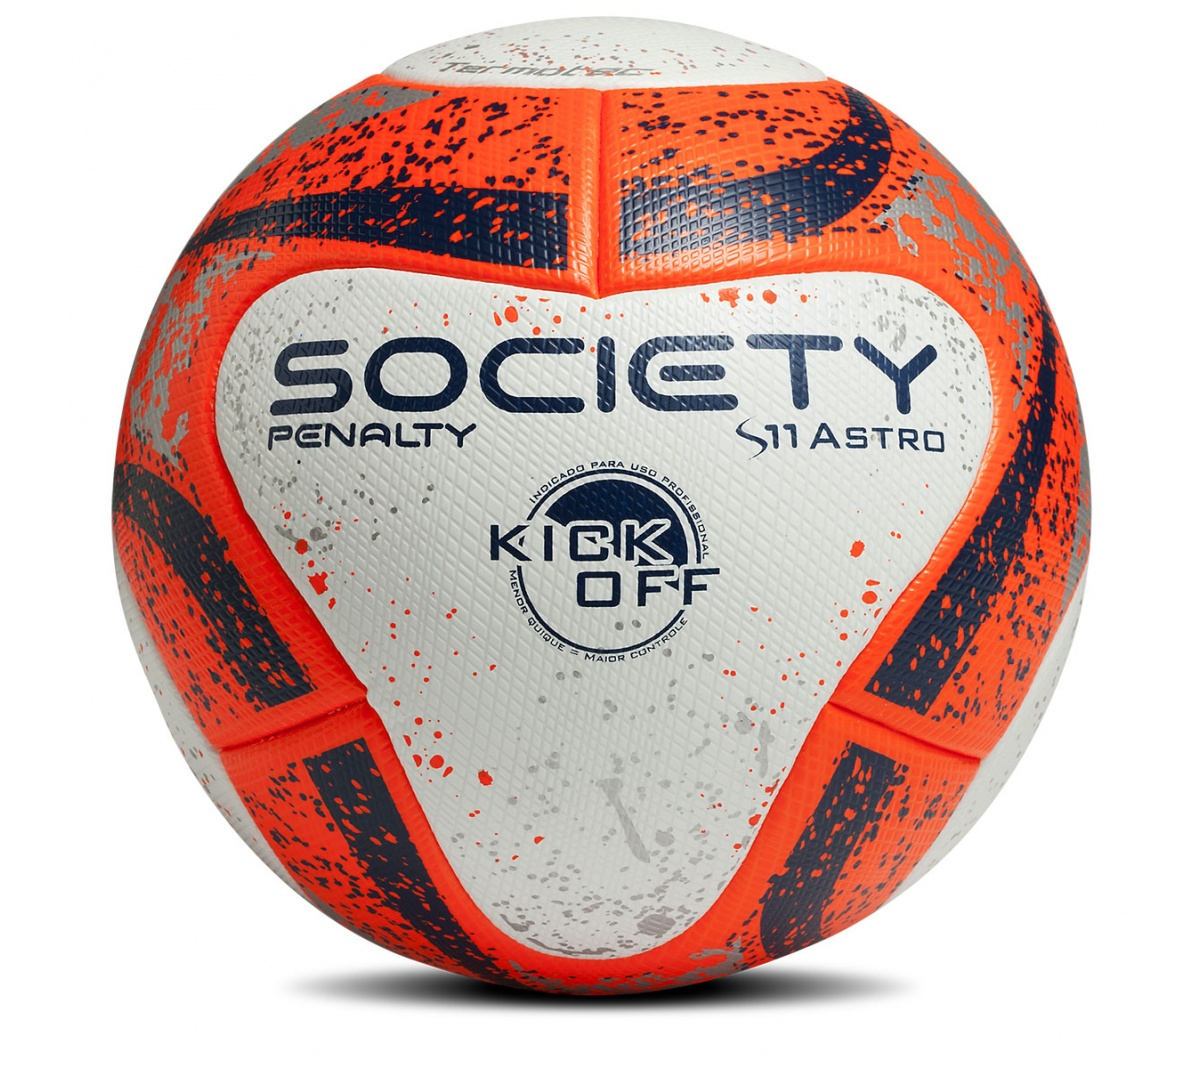 Bola Penalty Society S11 Astro Pró kick off